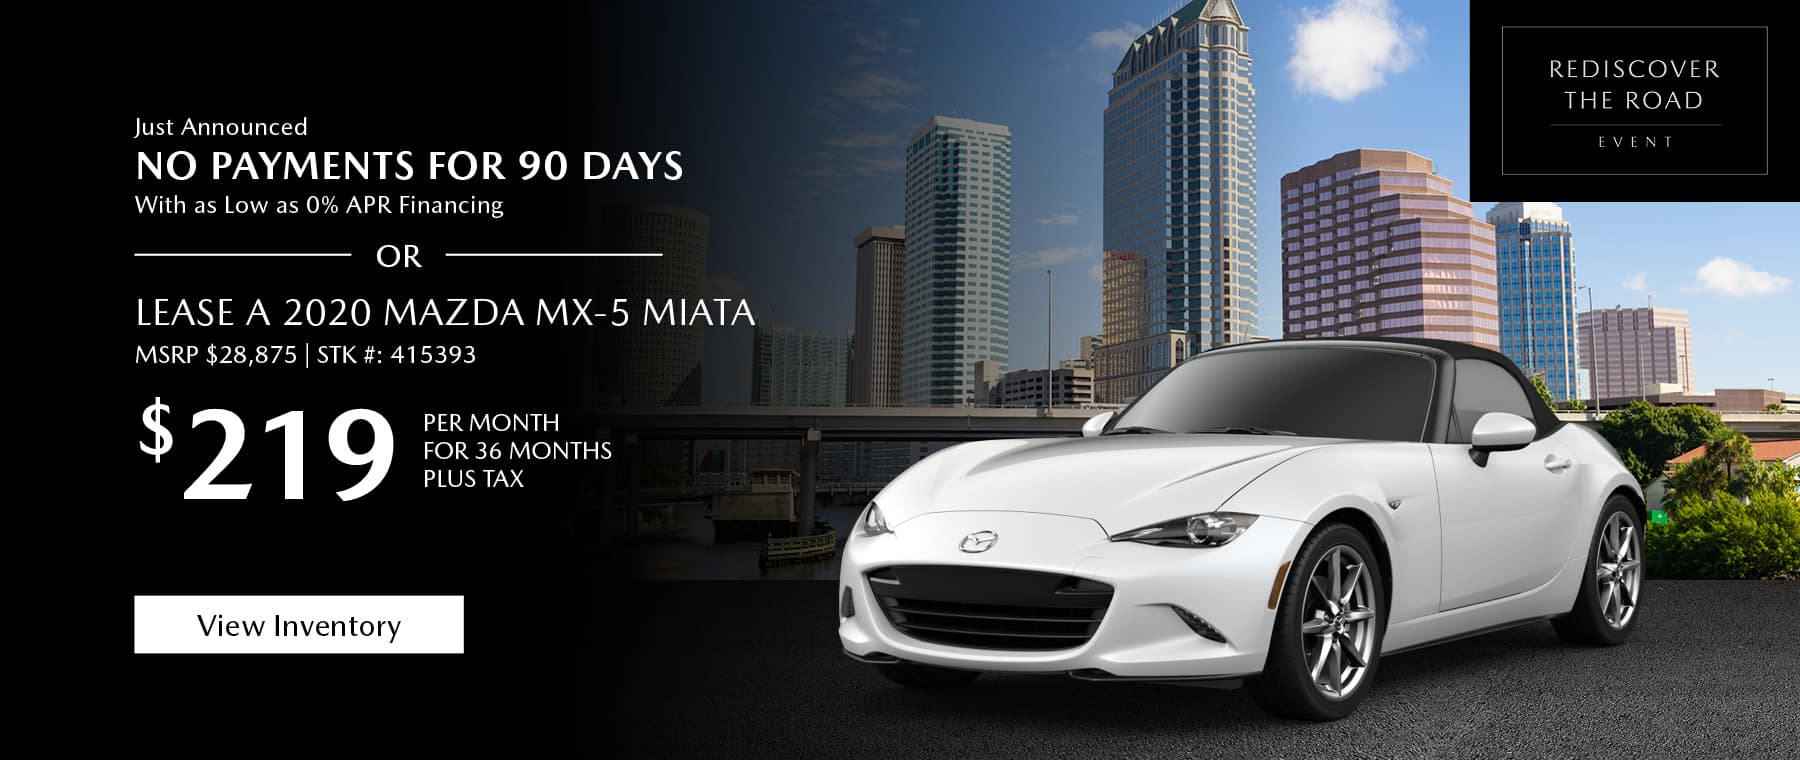 Just Announced, No payments for 90 days with as low as %0 APR financing, or lease the 2020 Mazda MX-5 Miata for $219 per month, plus tax for 36 months. Click or tap here to view our inventory.